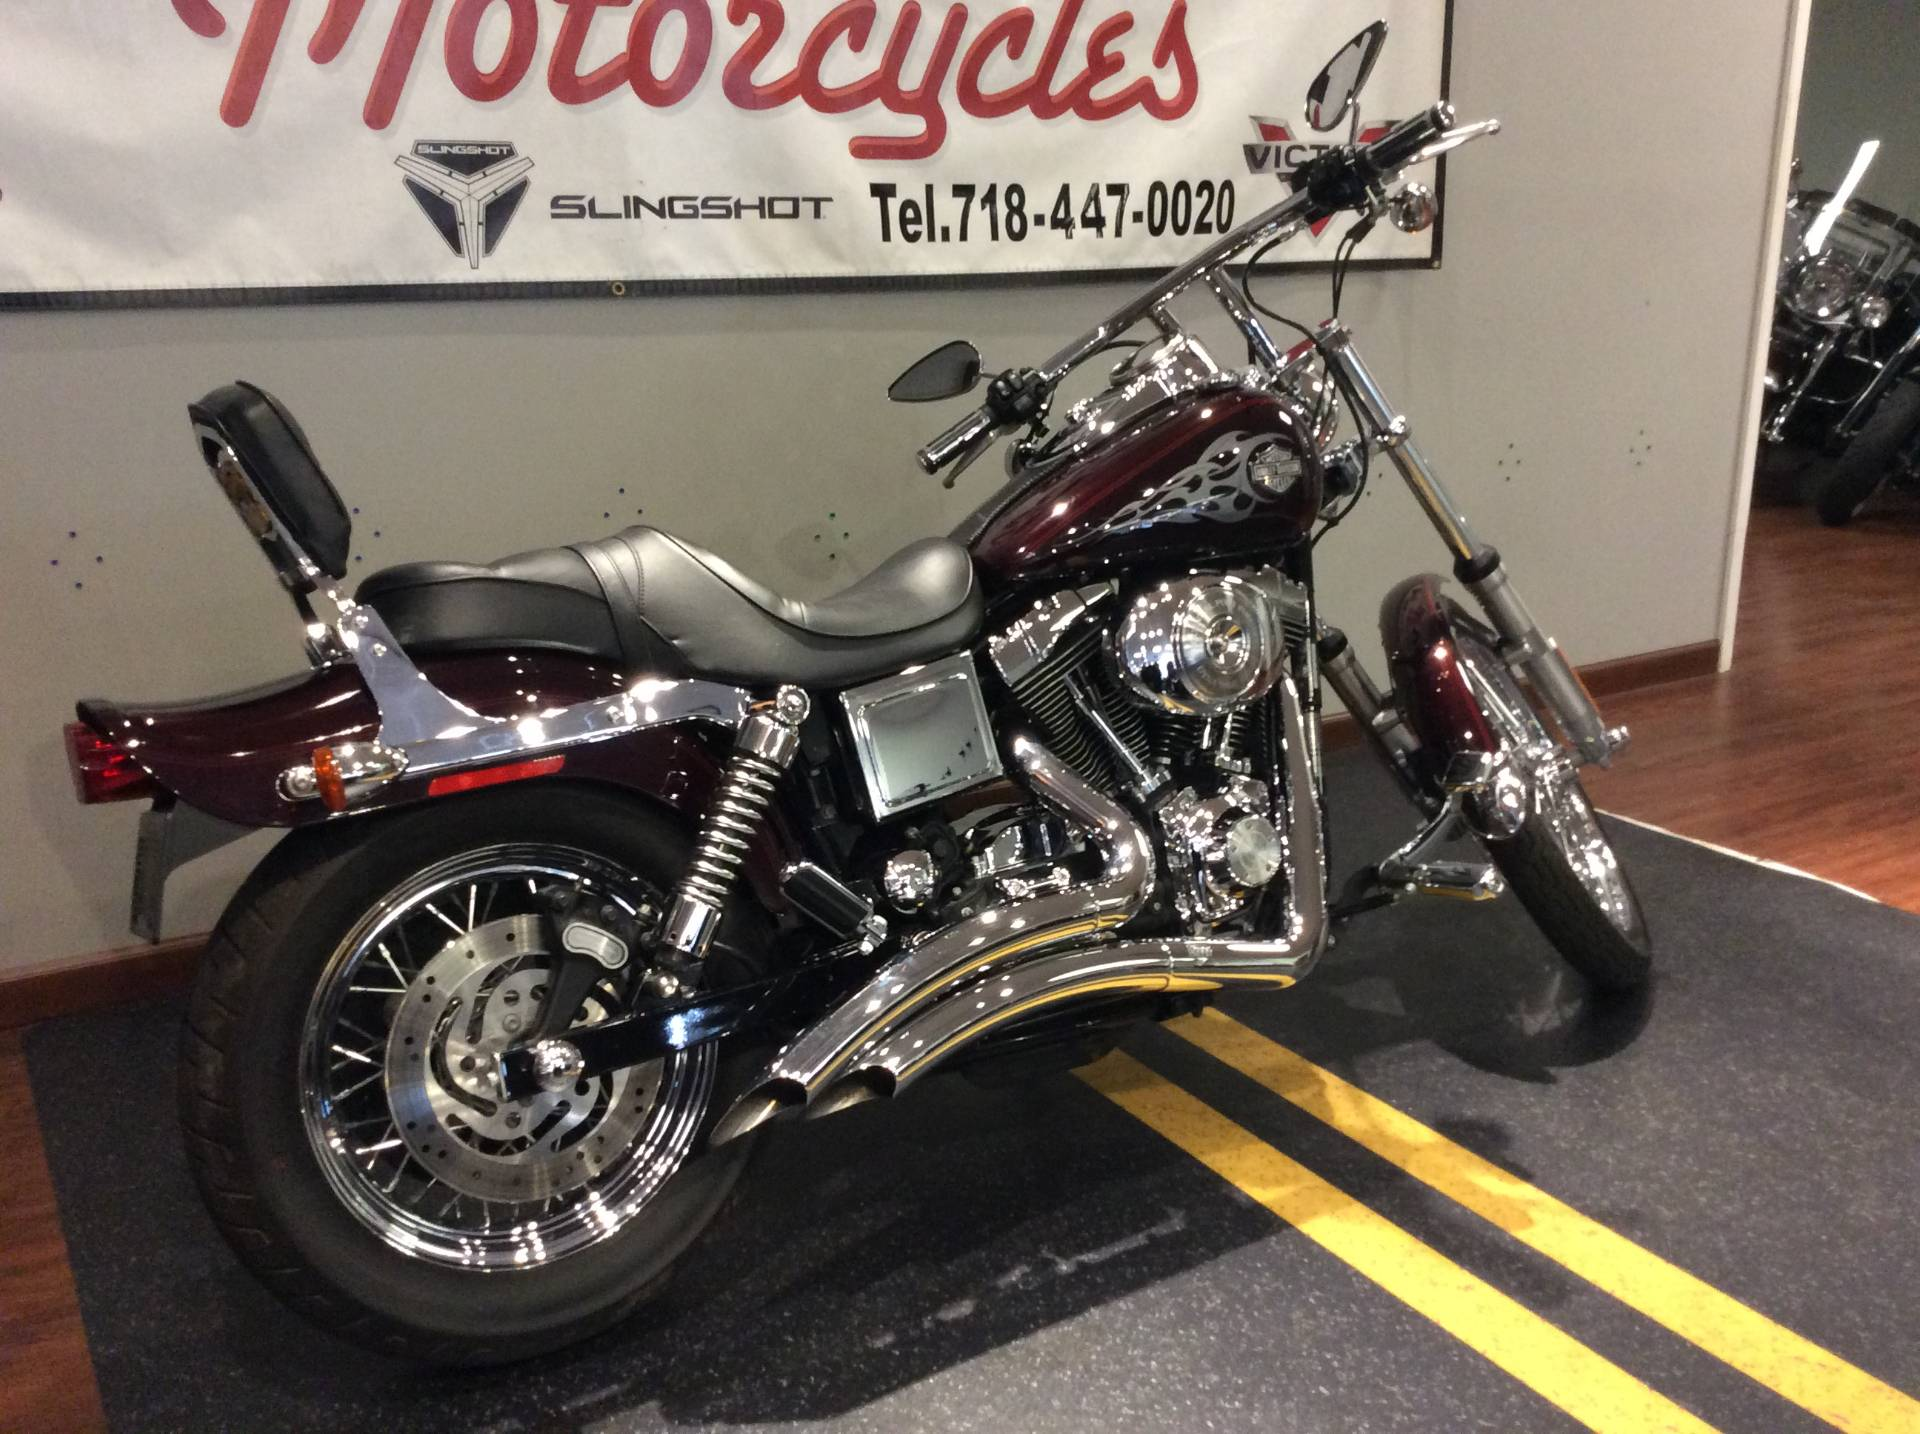 2005 Harley-Davidson FXDWG/FXDWGI Dyna Wide Glide® in Staten Island, New York - Photo 3